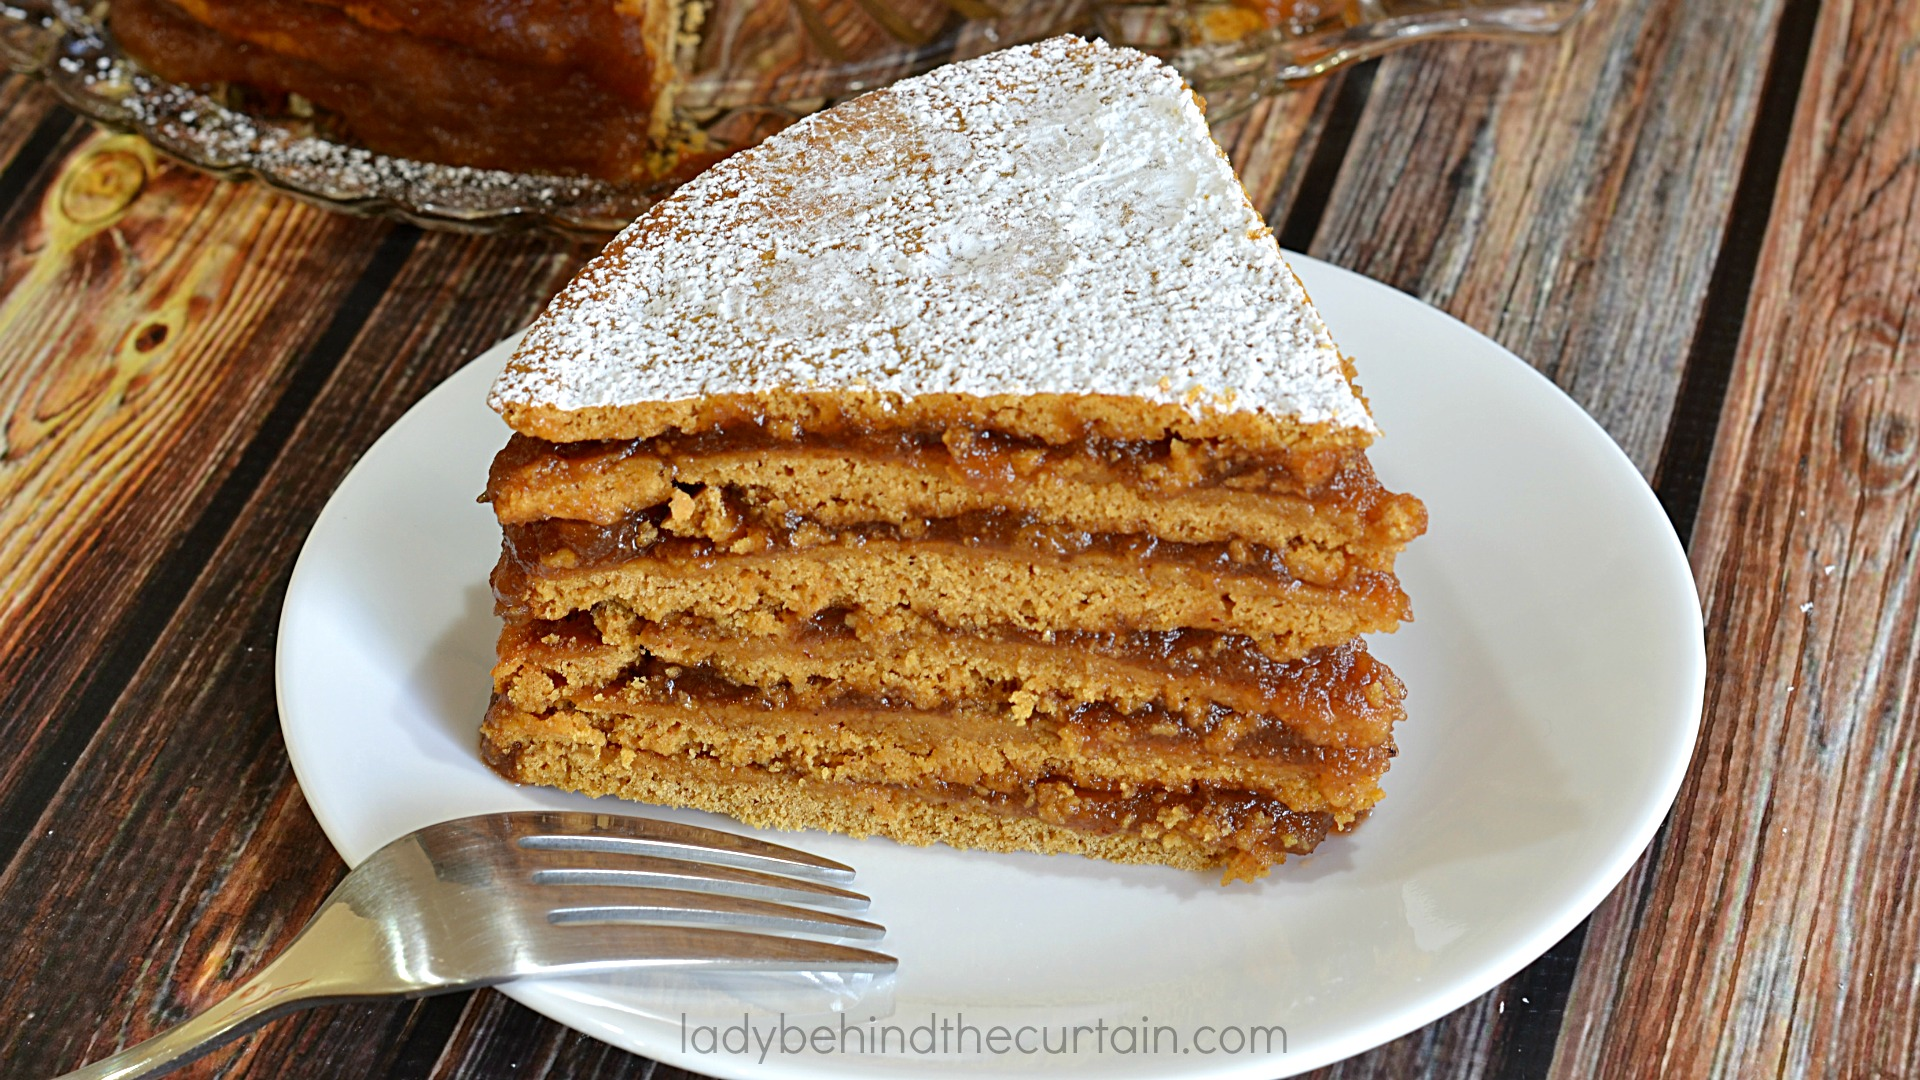 Old Fashioned Jam Cake Recipe With Buttermilk